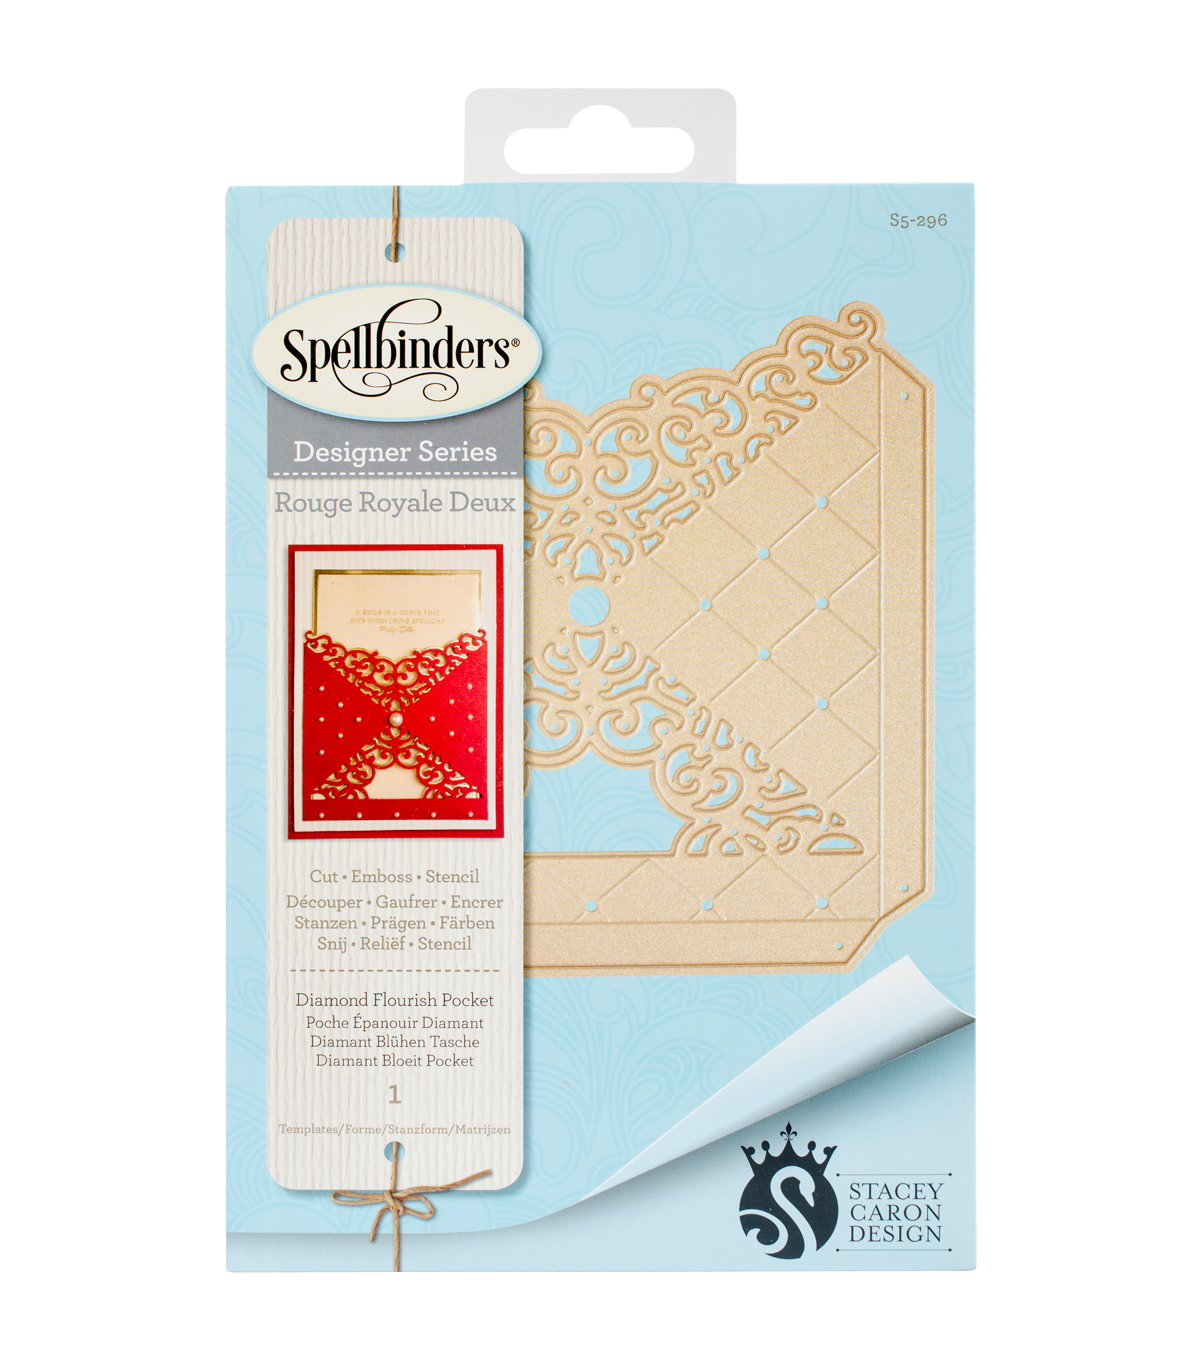 Spellbinders Shapeabilities Die-Diamond Flourish Pocket